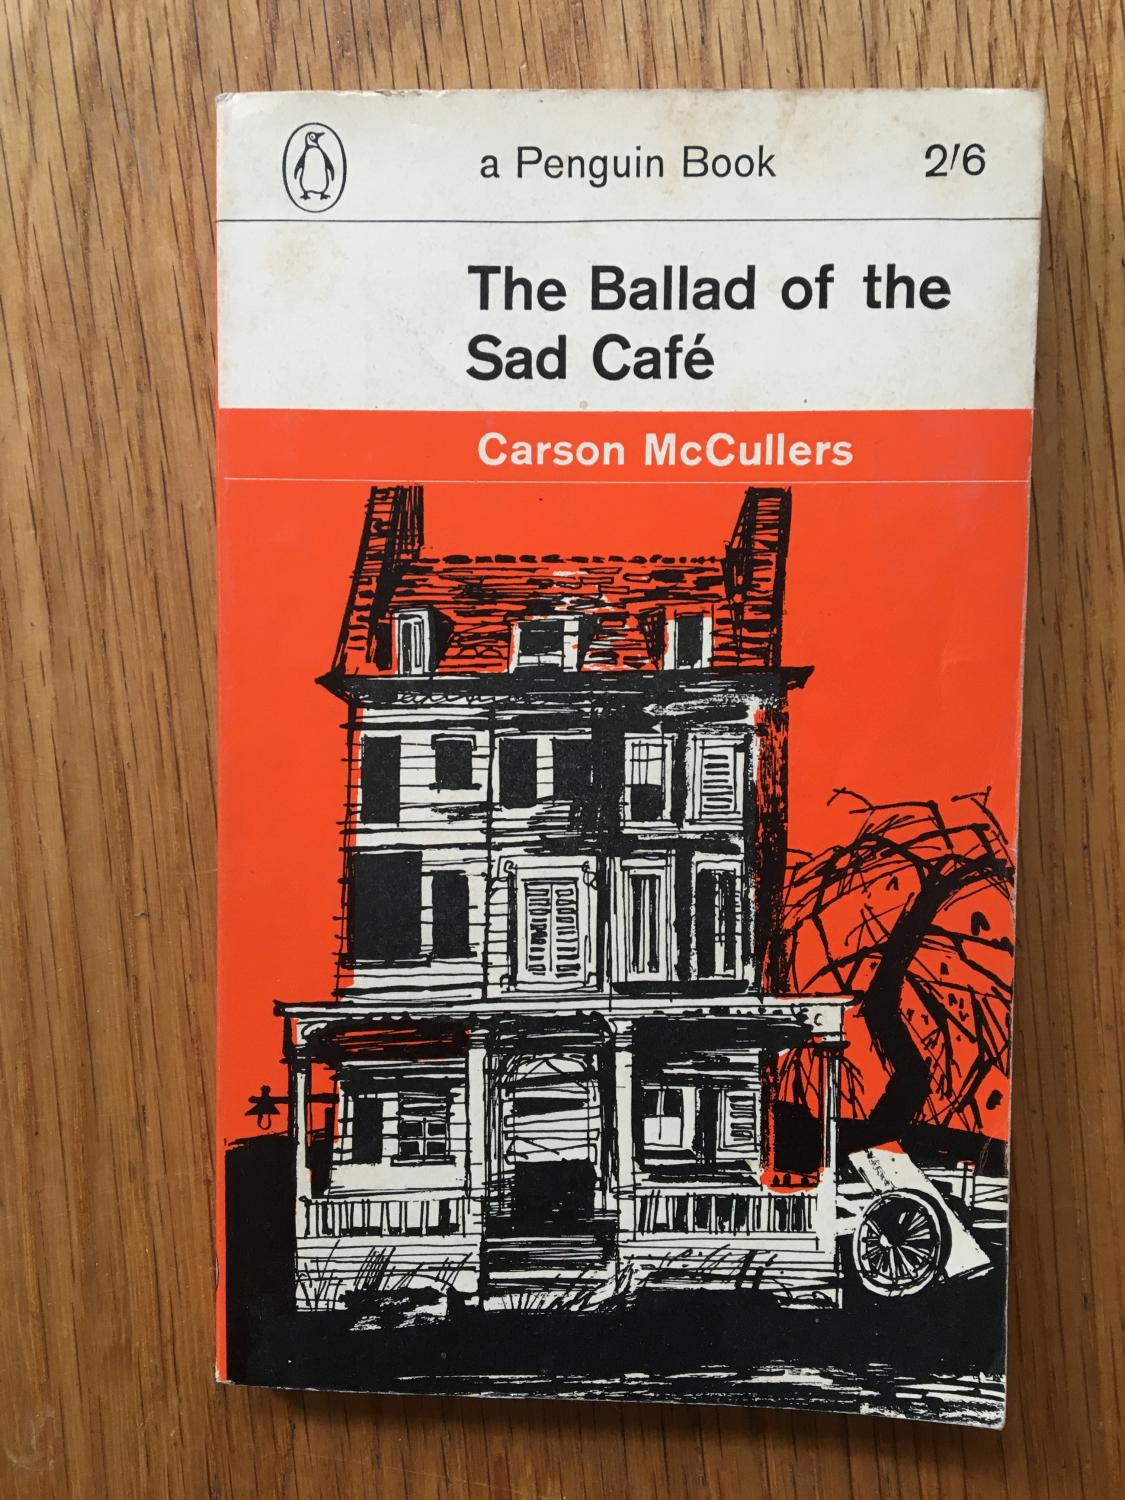 ballad of the sad cafe The southern love triangle between an amazon, a dwarf and a reformed scoundrel is the subject of edward albee's adaptation of carson mccullers' novel.